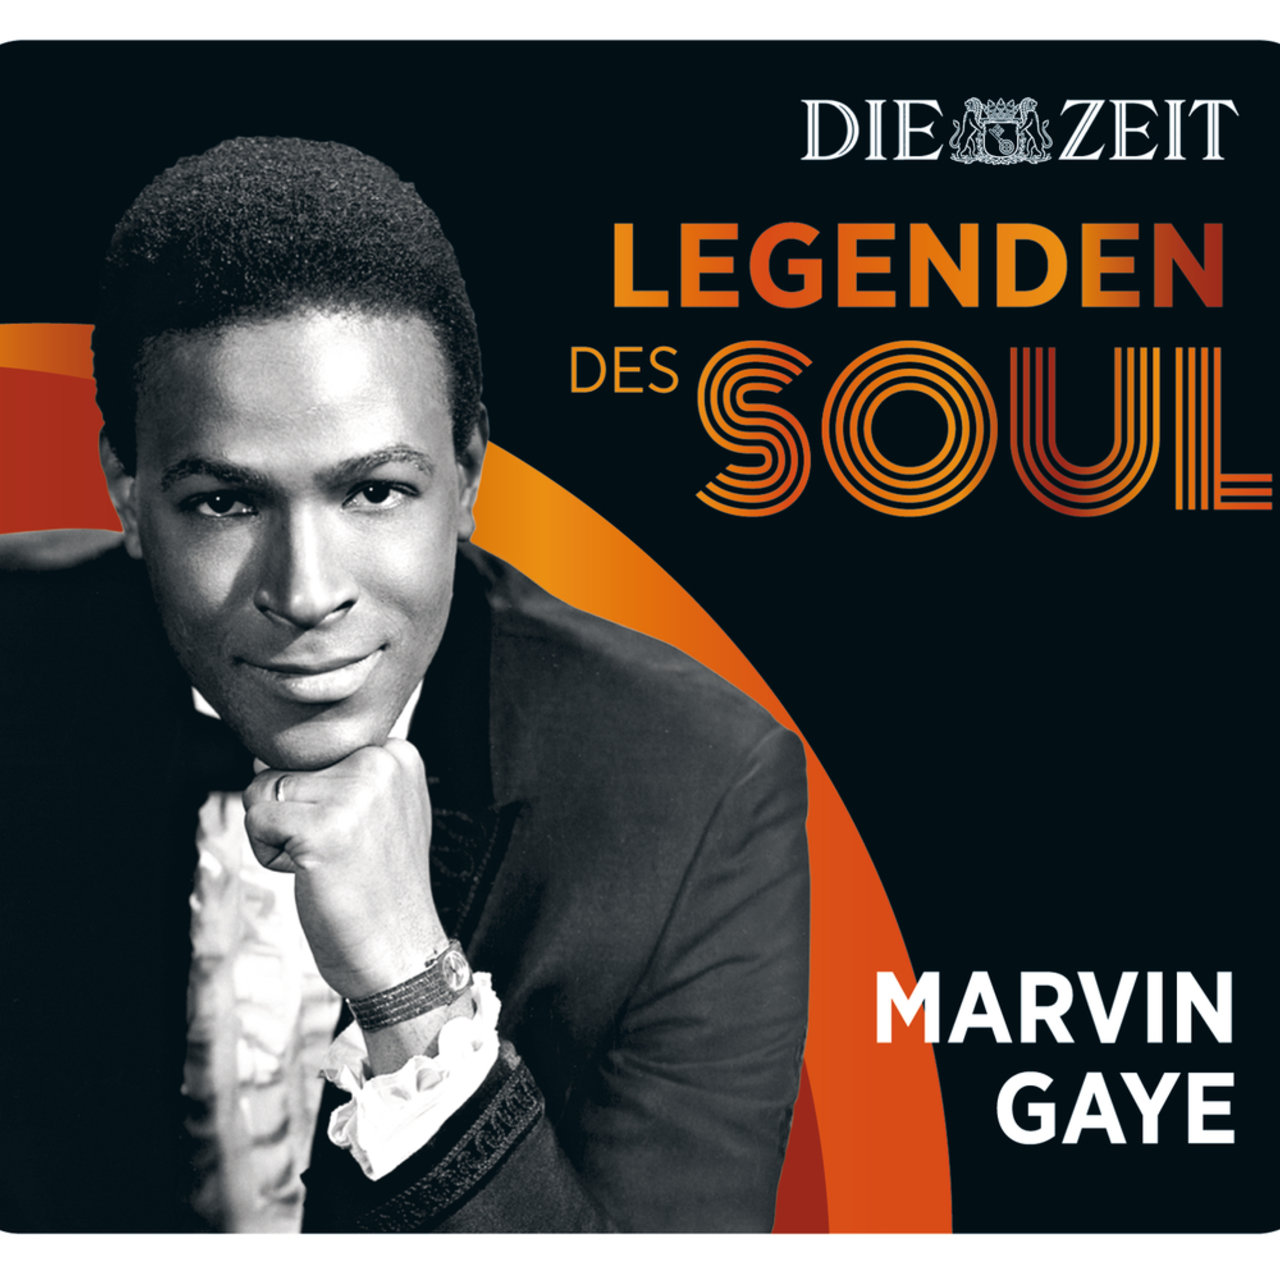 Legenden des Soul - Marvin Gaye